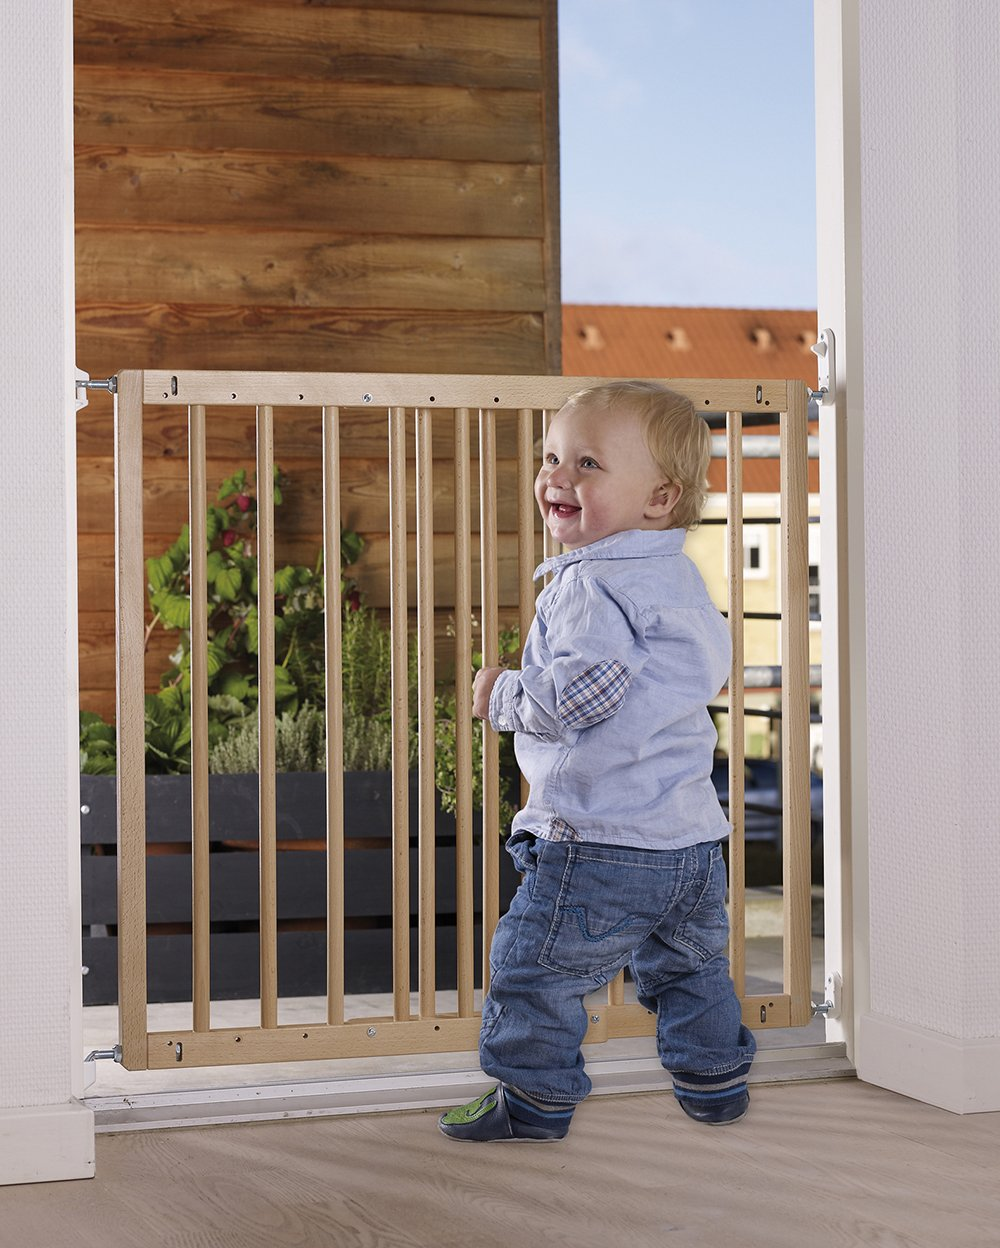 Baby Dan Multi Dan European Beech Wood Door and Stairs Safety Gate, Door Width 60.5-102 cm Colour: Natural  Quick release fittings for easy to UD quick remove. Opens in both directions. Adults can use the guard with one hand. 3